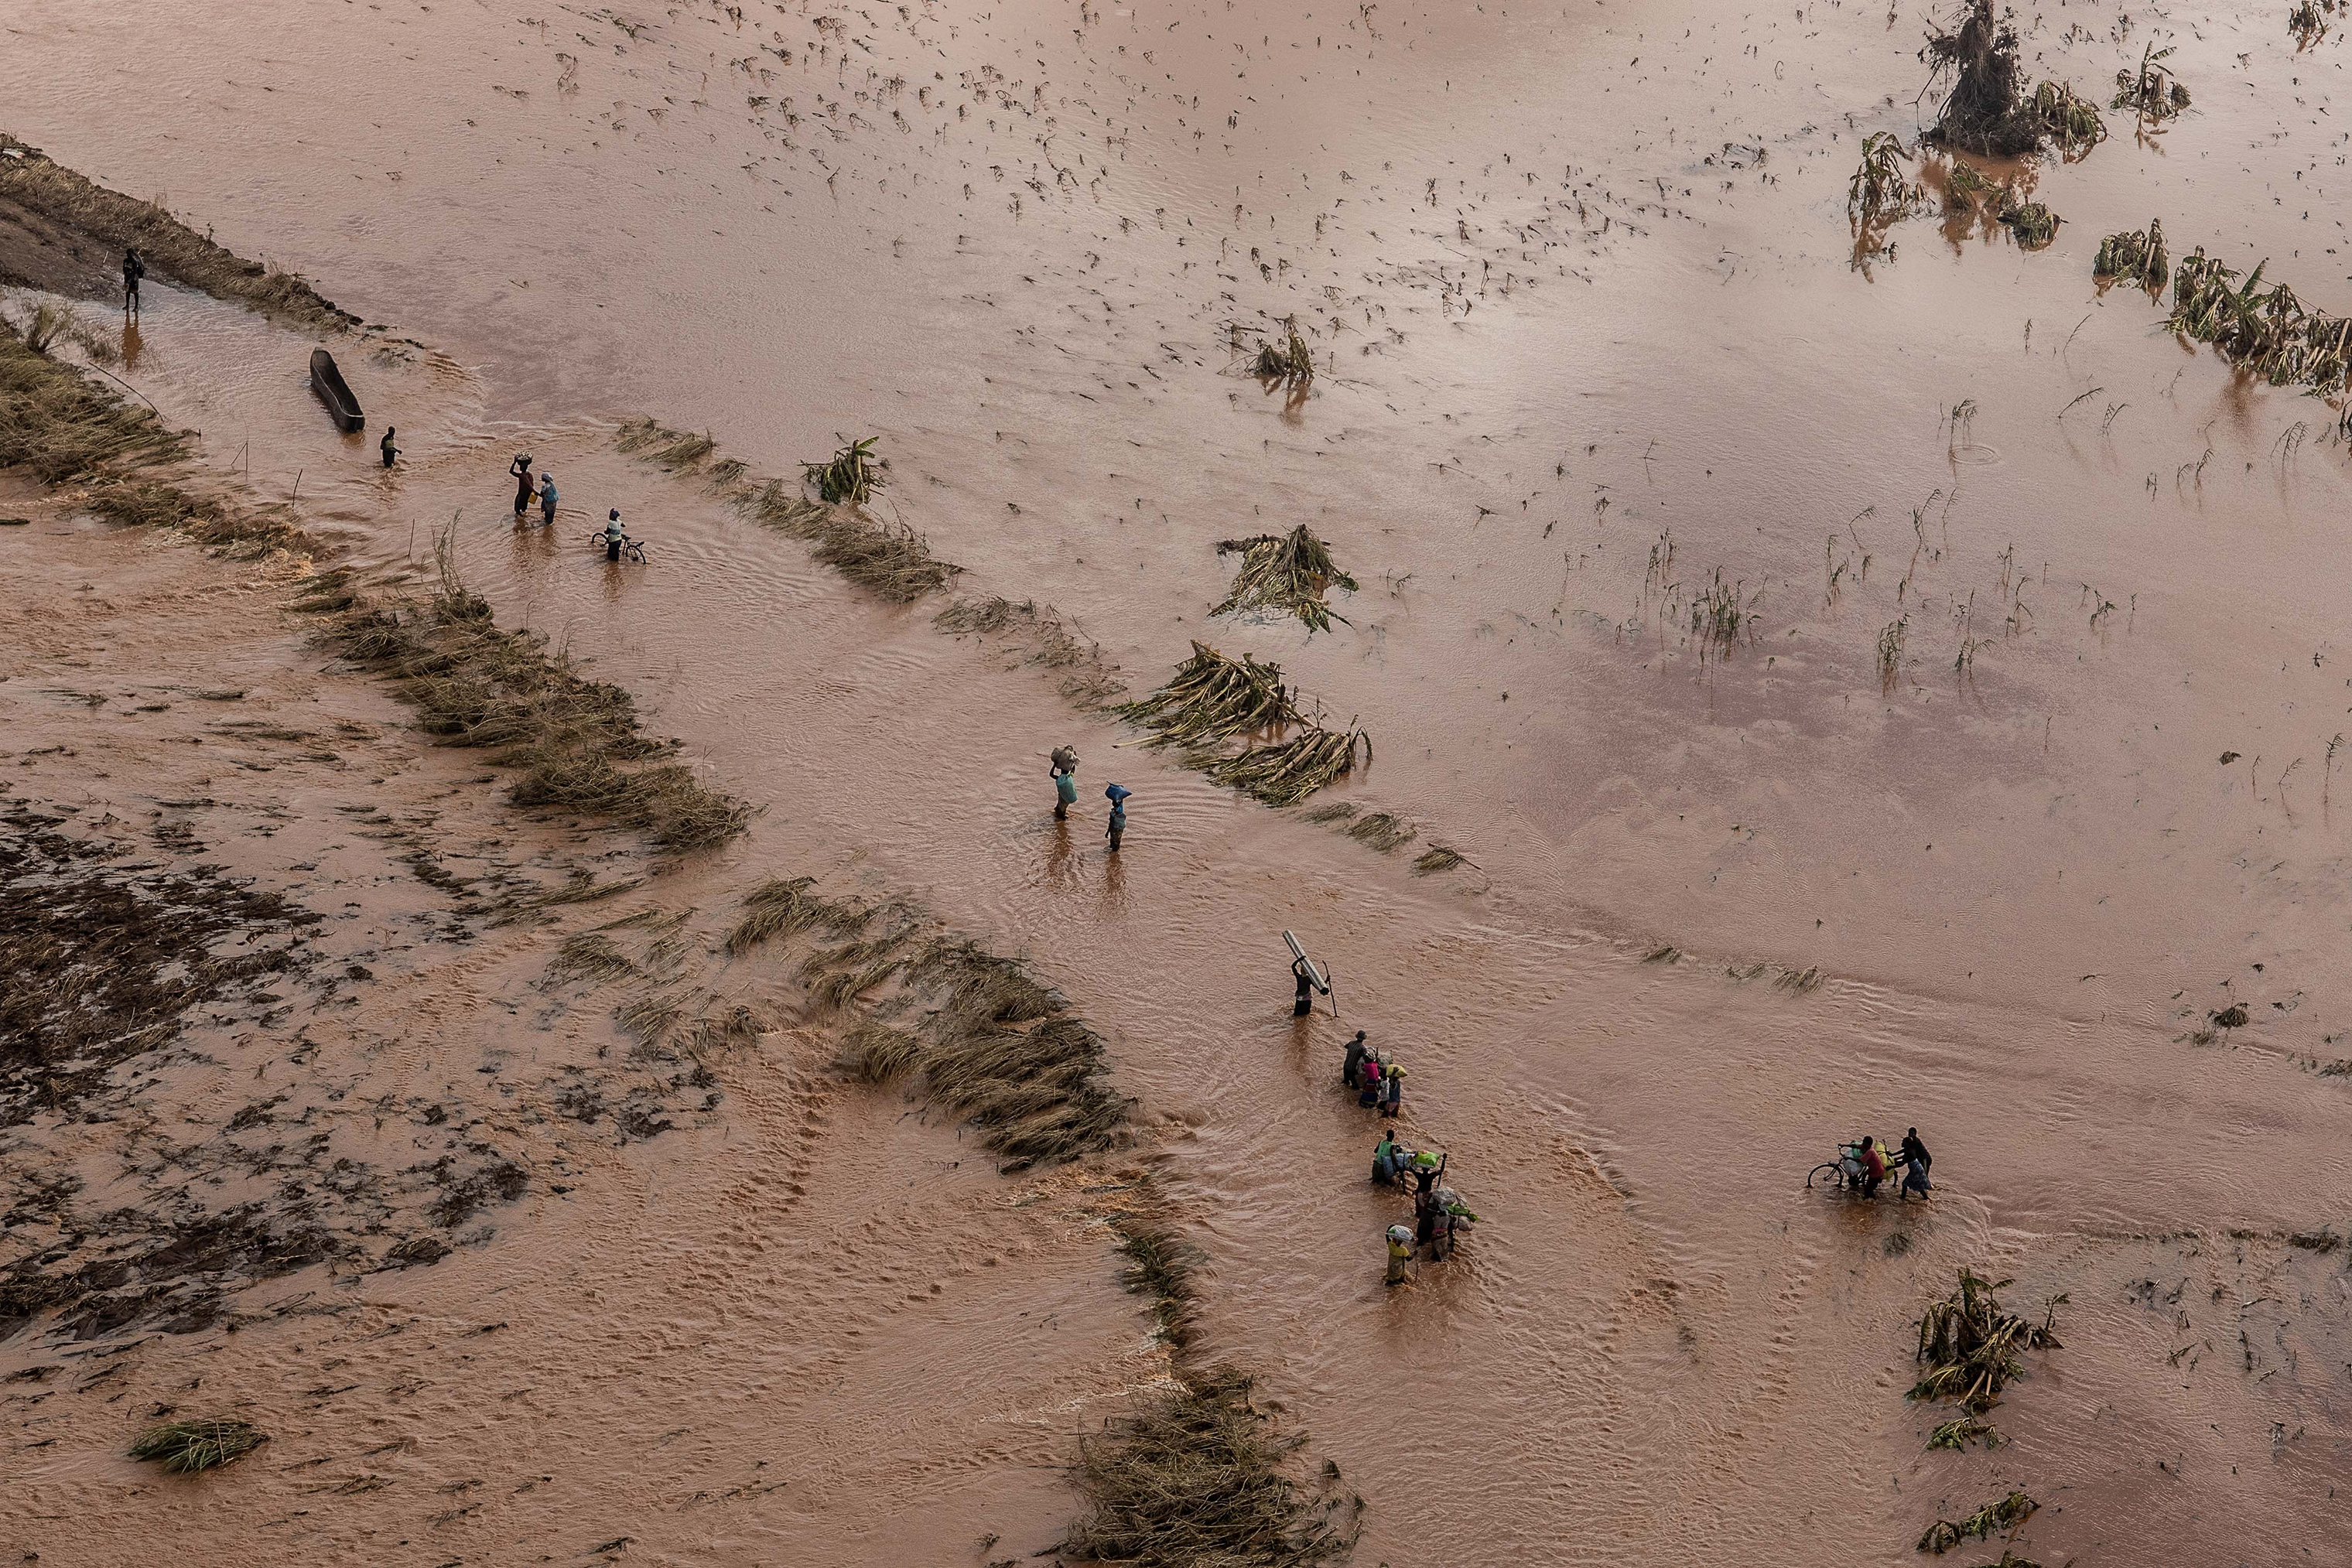 People wade through flood waters in a rural neighborhood affected by Cyclone Idai on March 24, 2019 in Buzi, Mozambique.